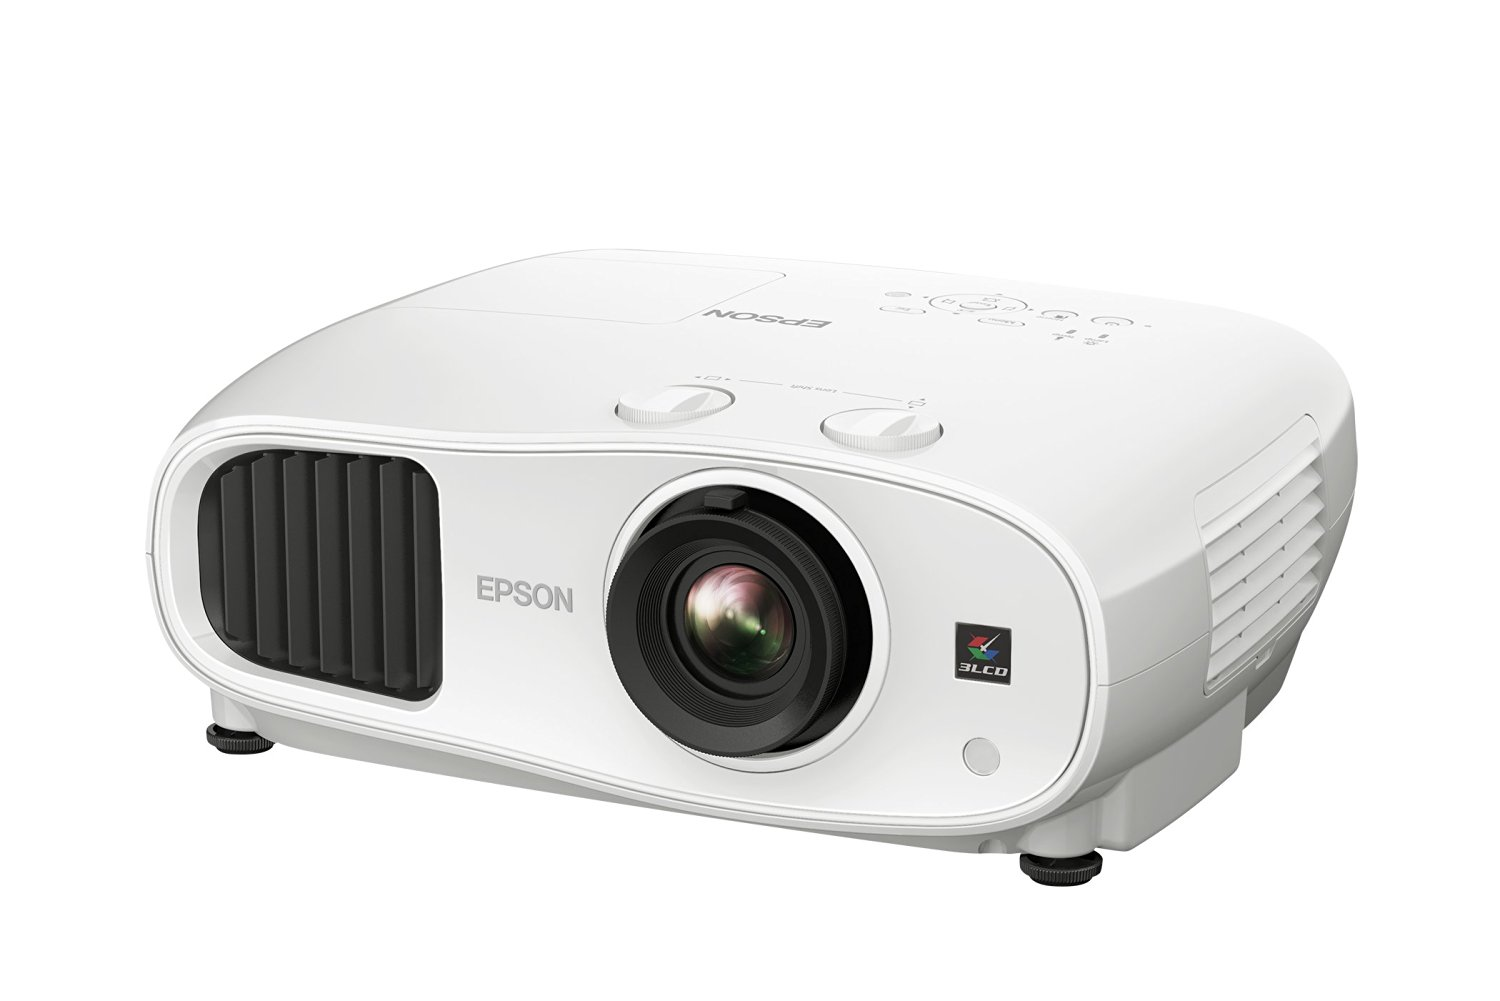 Epson Home Cinema 1080p 3LCD Home Theater Projector – Available in 2 Setup Options